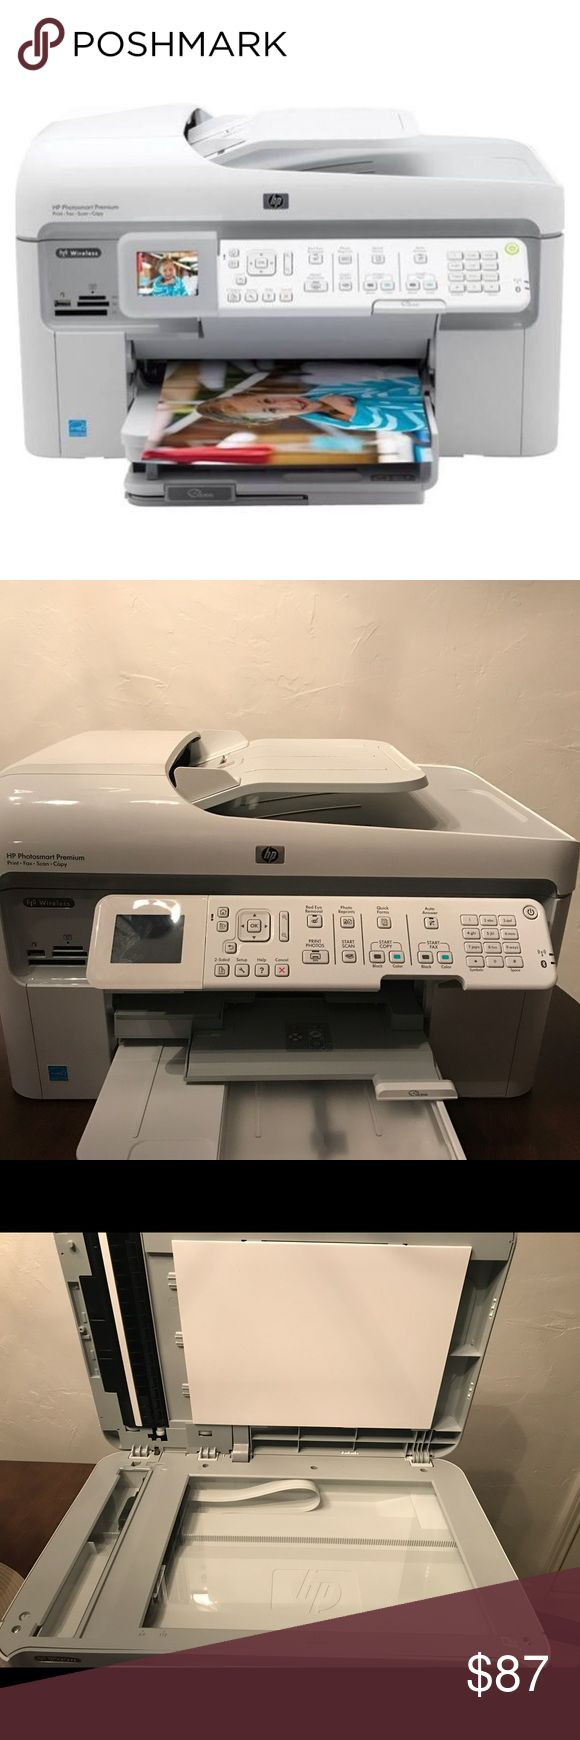 HP Photosmart Premium All in one inkjet C309A Details:Incudes cord and adapter.  Needs PHOTO CARTRIDGE ink! Purchasable anywhere!  Versatile all-in-one with fax, photo features and more. Wireless networking with easy setup is important for their multi-PC home. - This versatile all-in-one offers print, fax, scan and copy functions, plus a 2-sided automatic document feeder and duplexer.  Technology: Inkjet Printer Type All-In-One Printer Photosmart Premium C309A Black Print Speed: 33ppm…